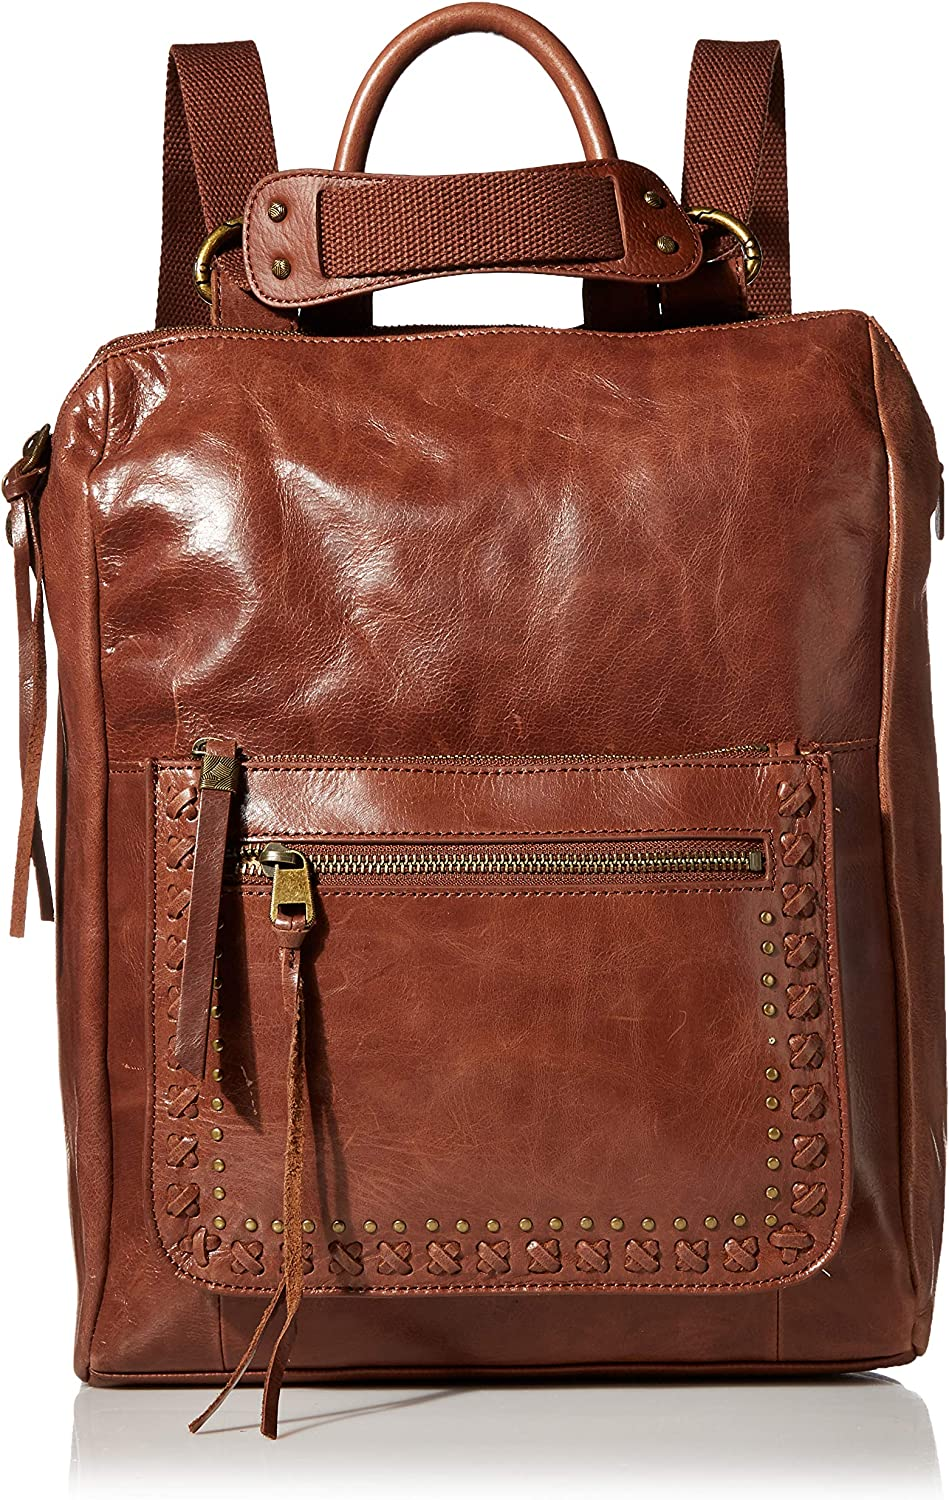 The Sak Loyola Crochet Mini Convertible Backpack